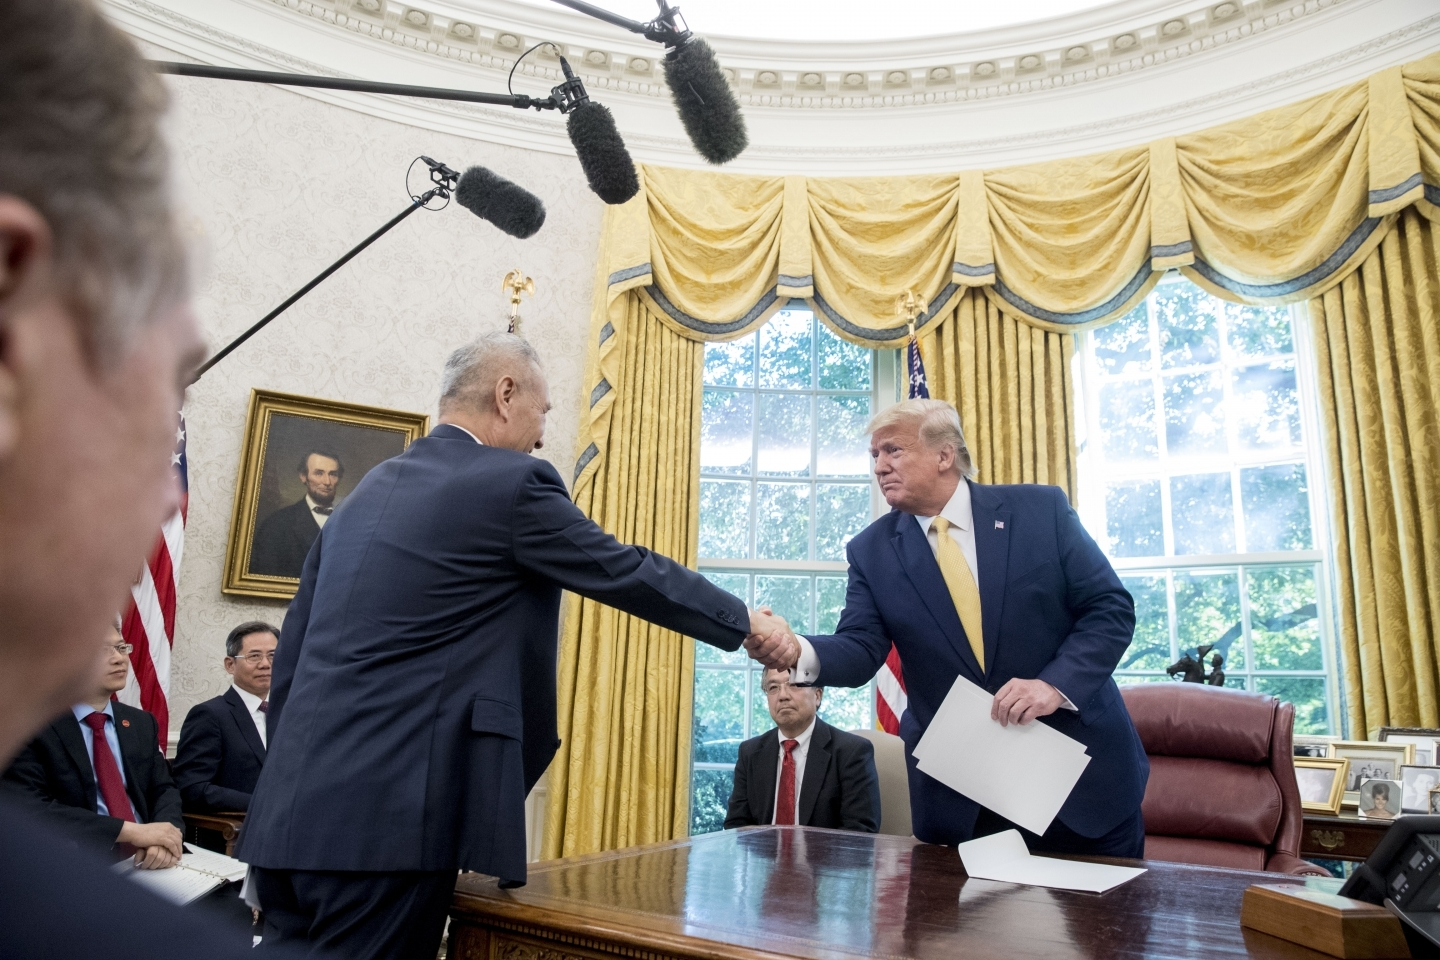 President Donald Trump shakes hands with Chinese Vice Premier Liu He after being given a letter in the Oval Office of the White House in Washington, October 11, 2019. (AP Photo/Andrew Harnik)